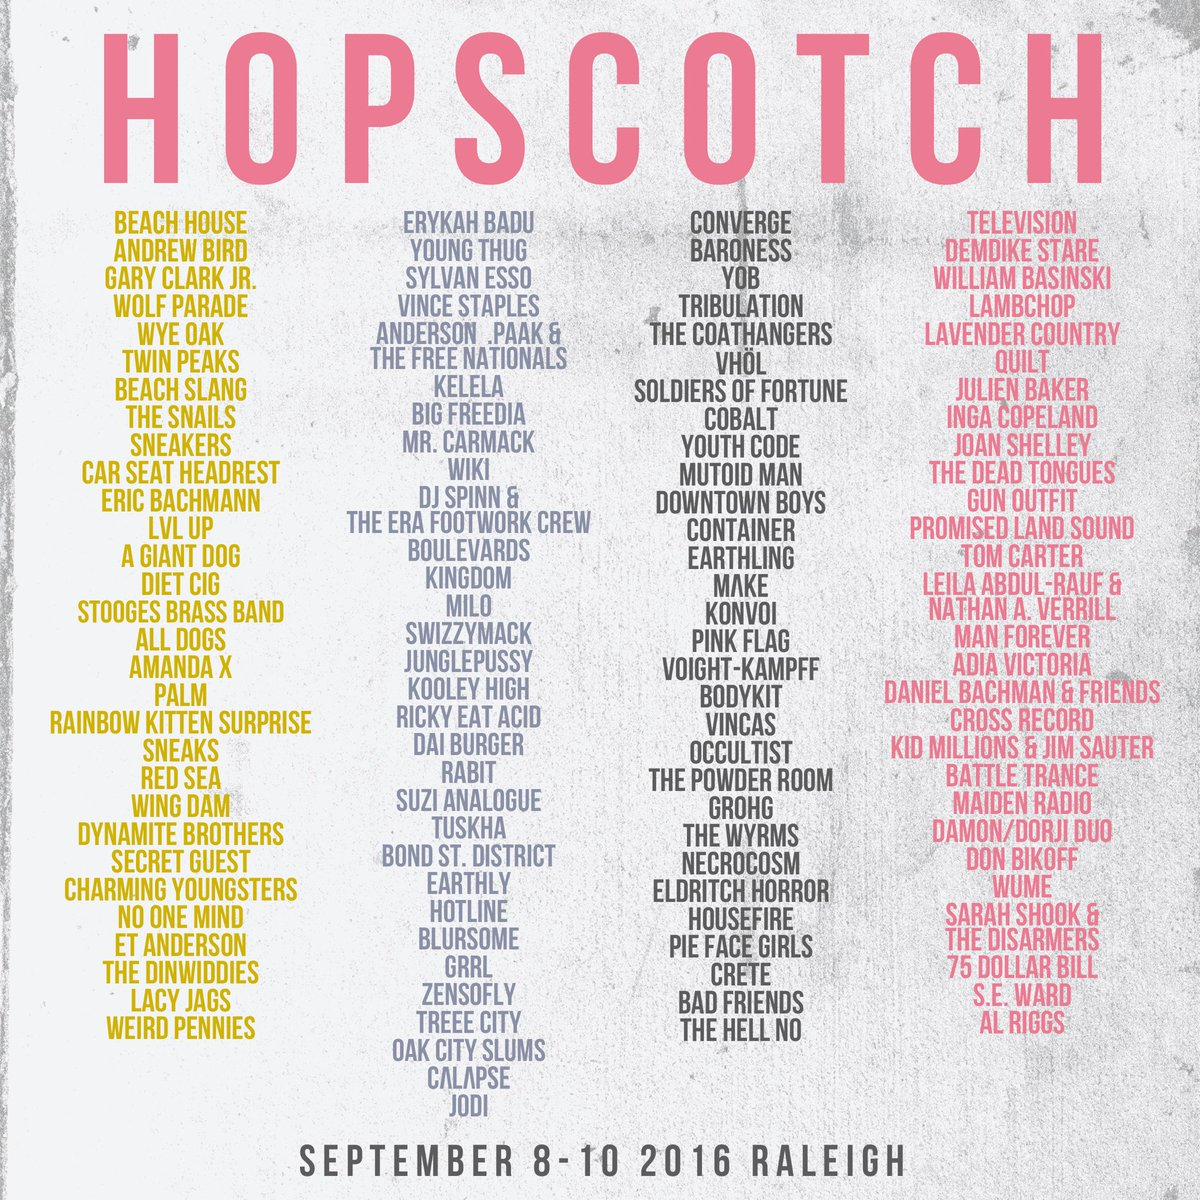 Calendar finally let's us say it: Hopscotch is next week